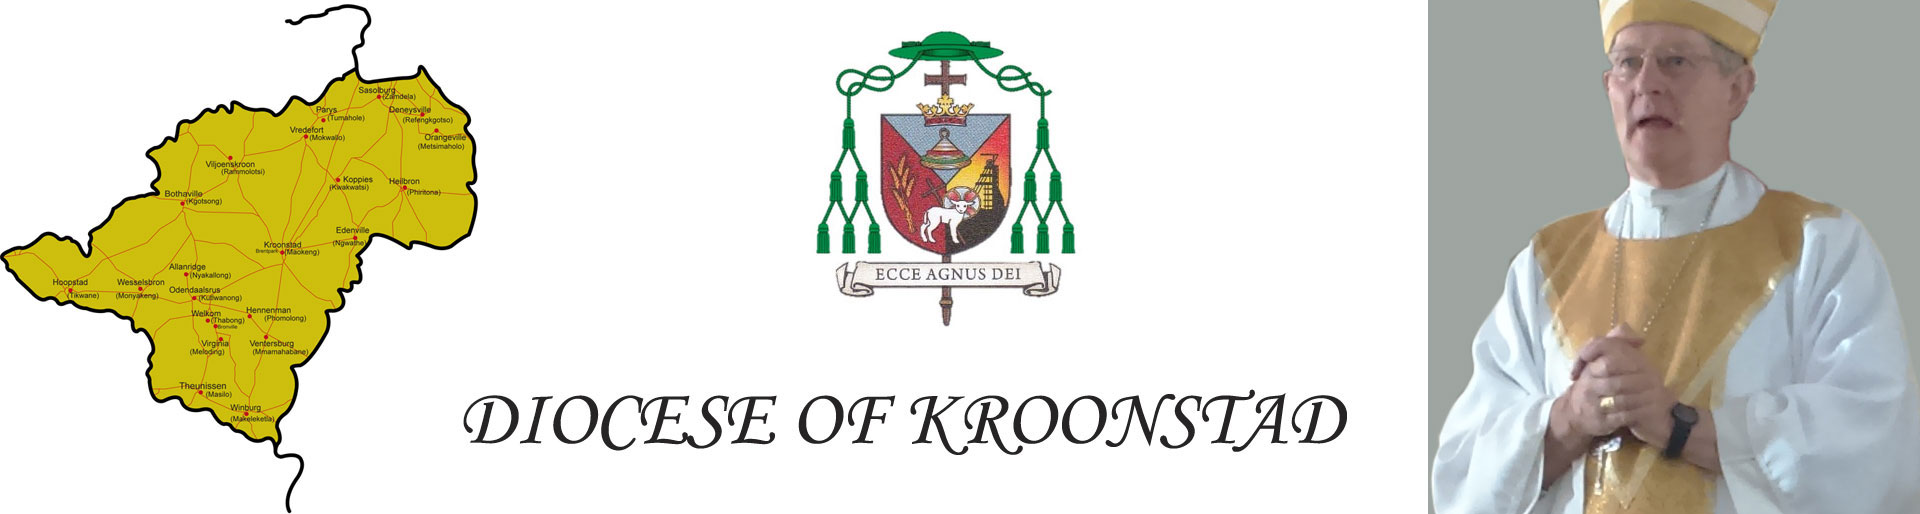 diocese-of-kroonstad-bishop-right-reverend-peter-holiday